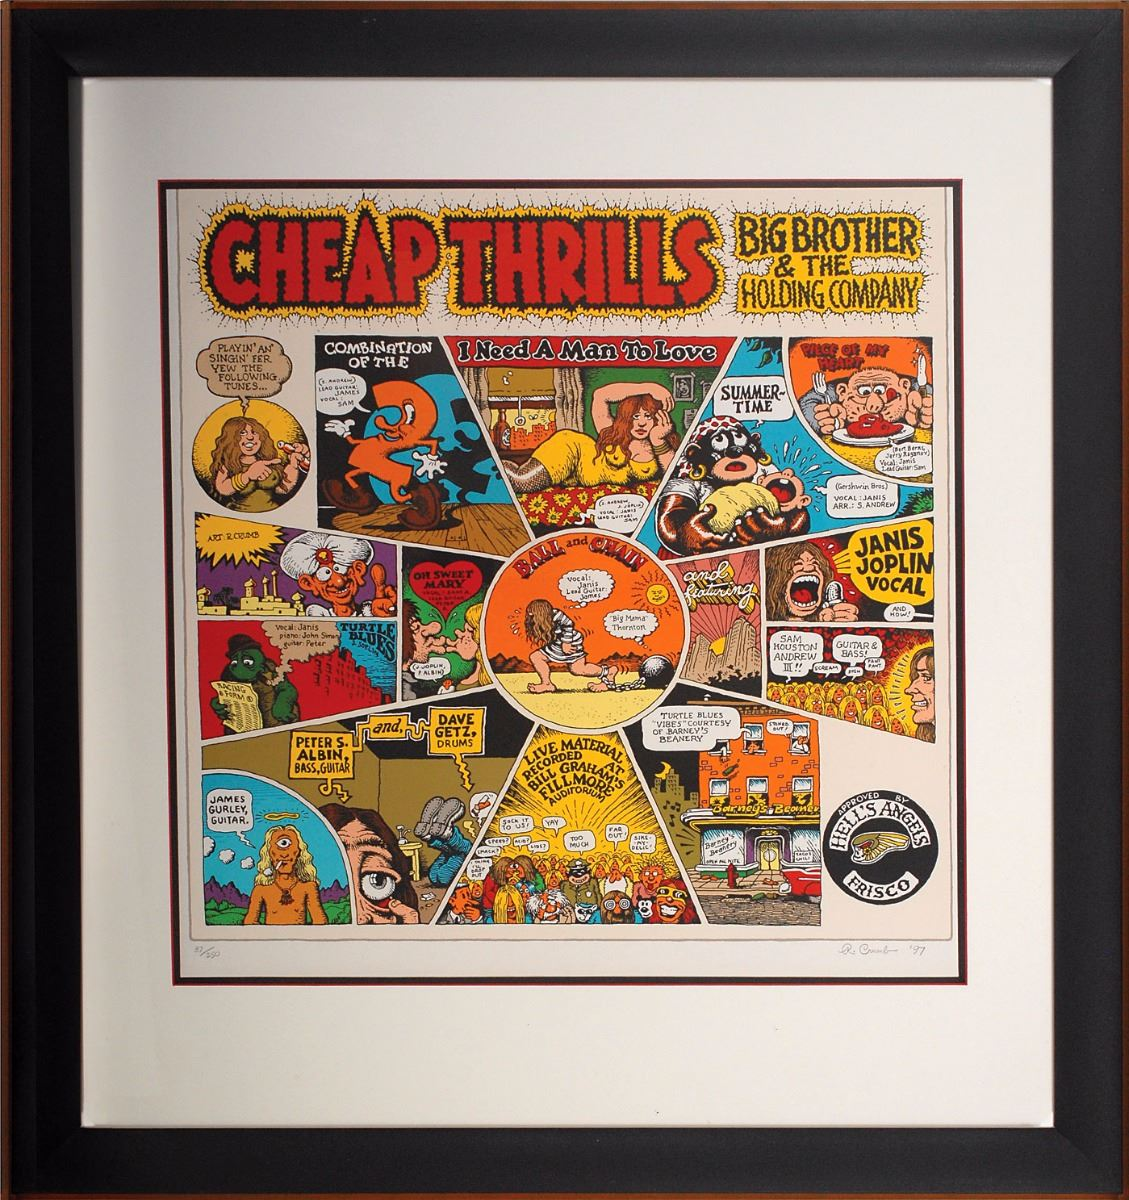 Robert Crumb Signed Lithograph: Big Brother and the Holding Company